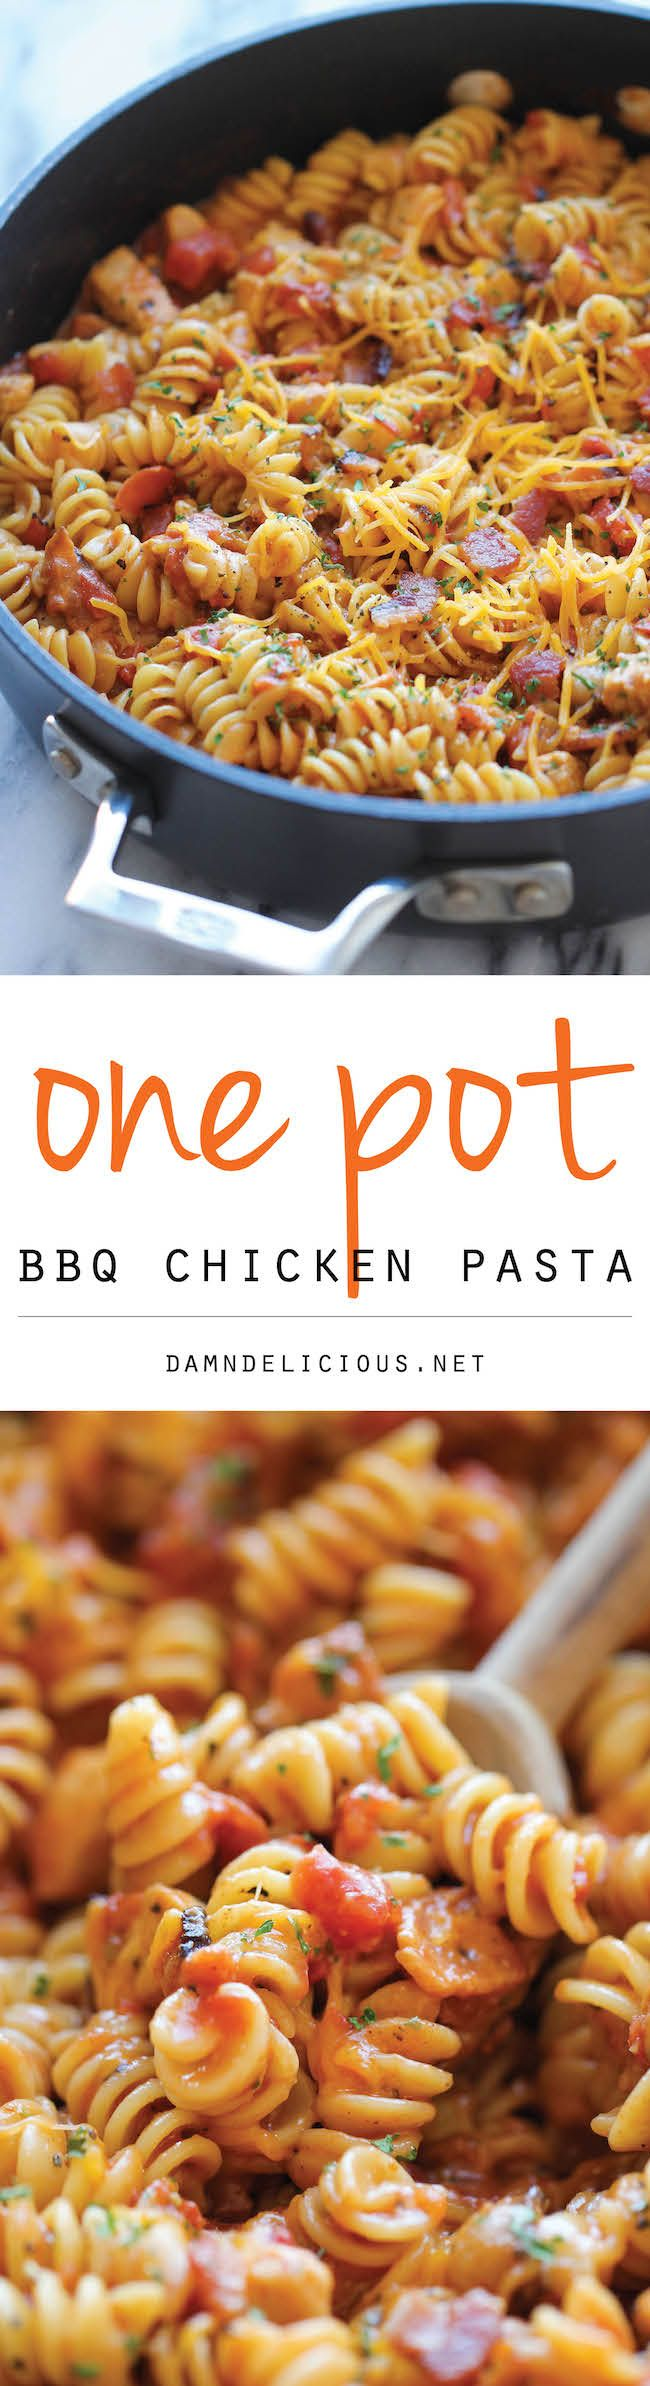 One Pot BBQ Chicken Pasta - A super easy one pot cheesy pasta dish loaded with tangy BBQ sauce and crisp bacon. Even the pasta gets cooked right in the pot!